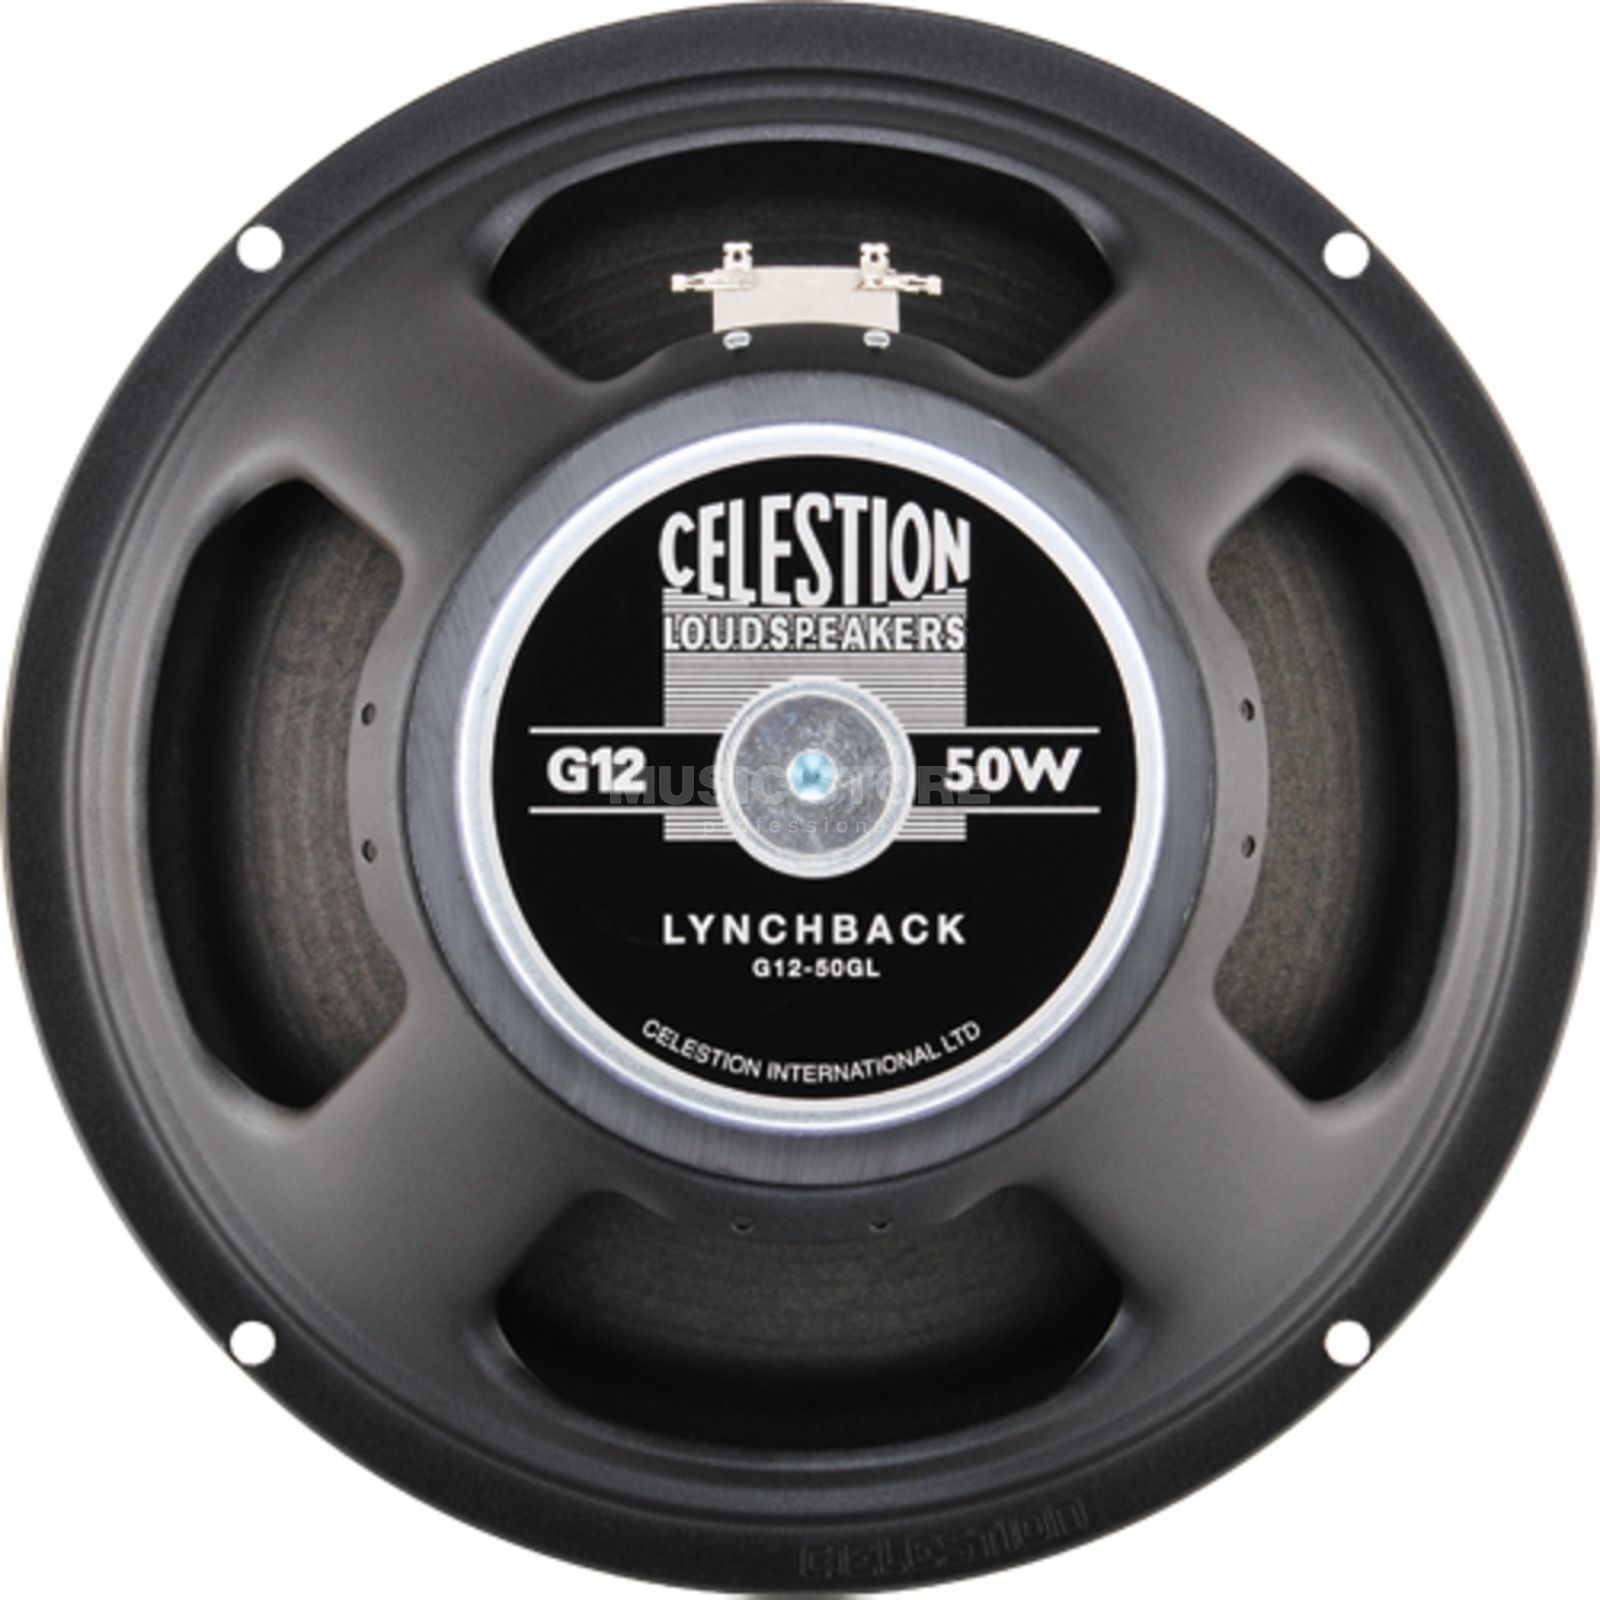 "Celestion G12 Lynchback 12"" Speaker 8 Ohm Produktbild"